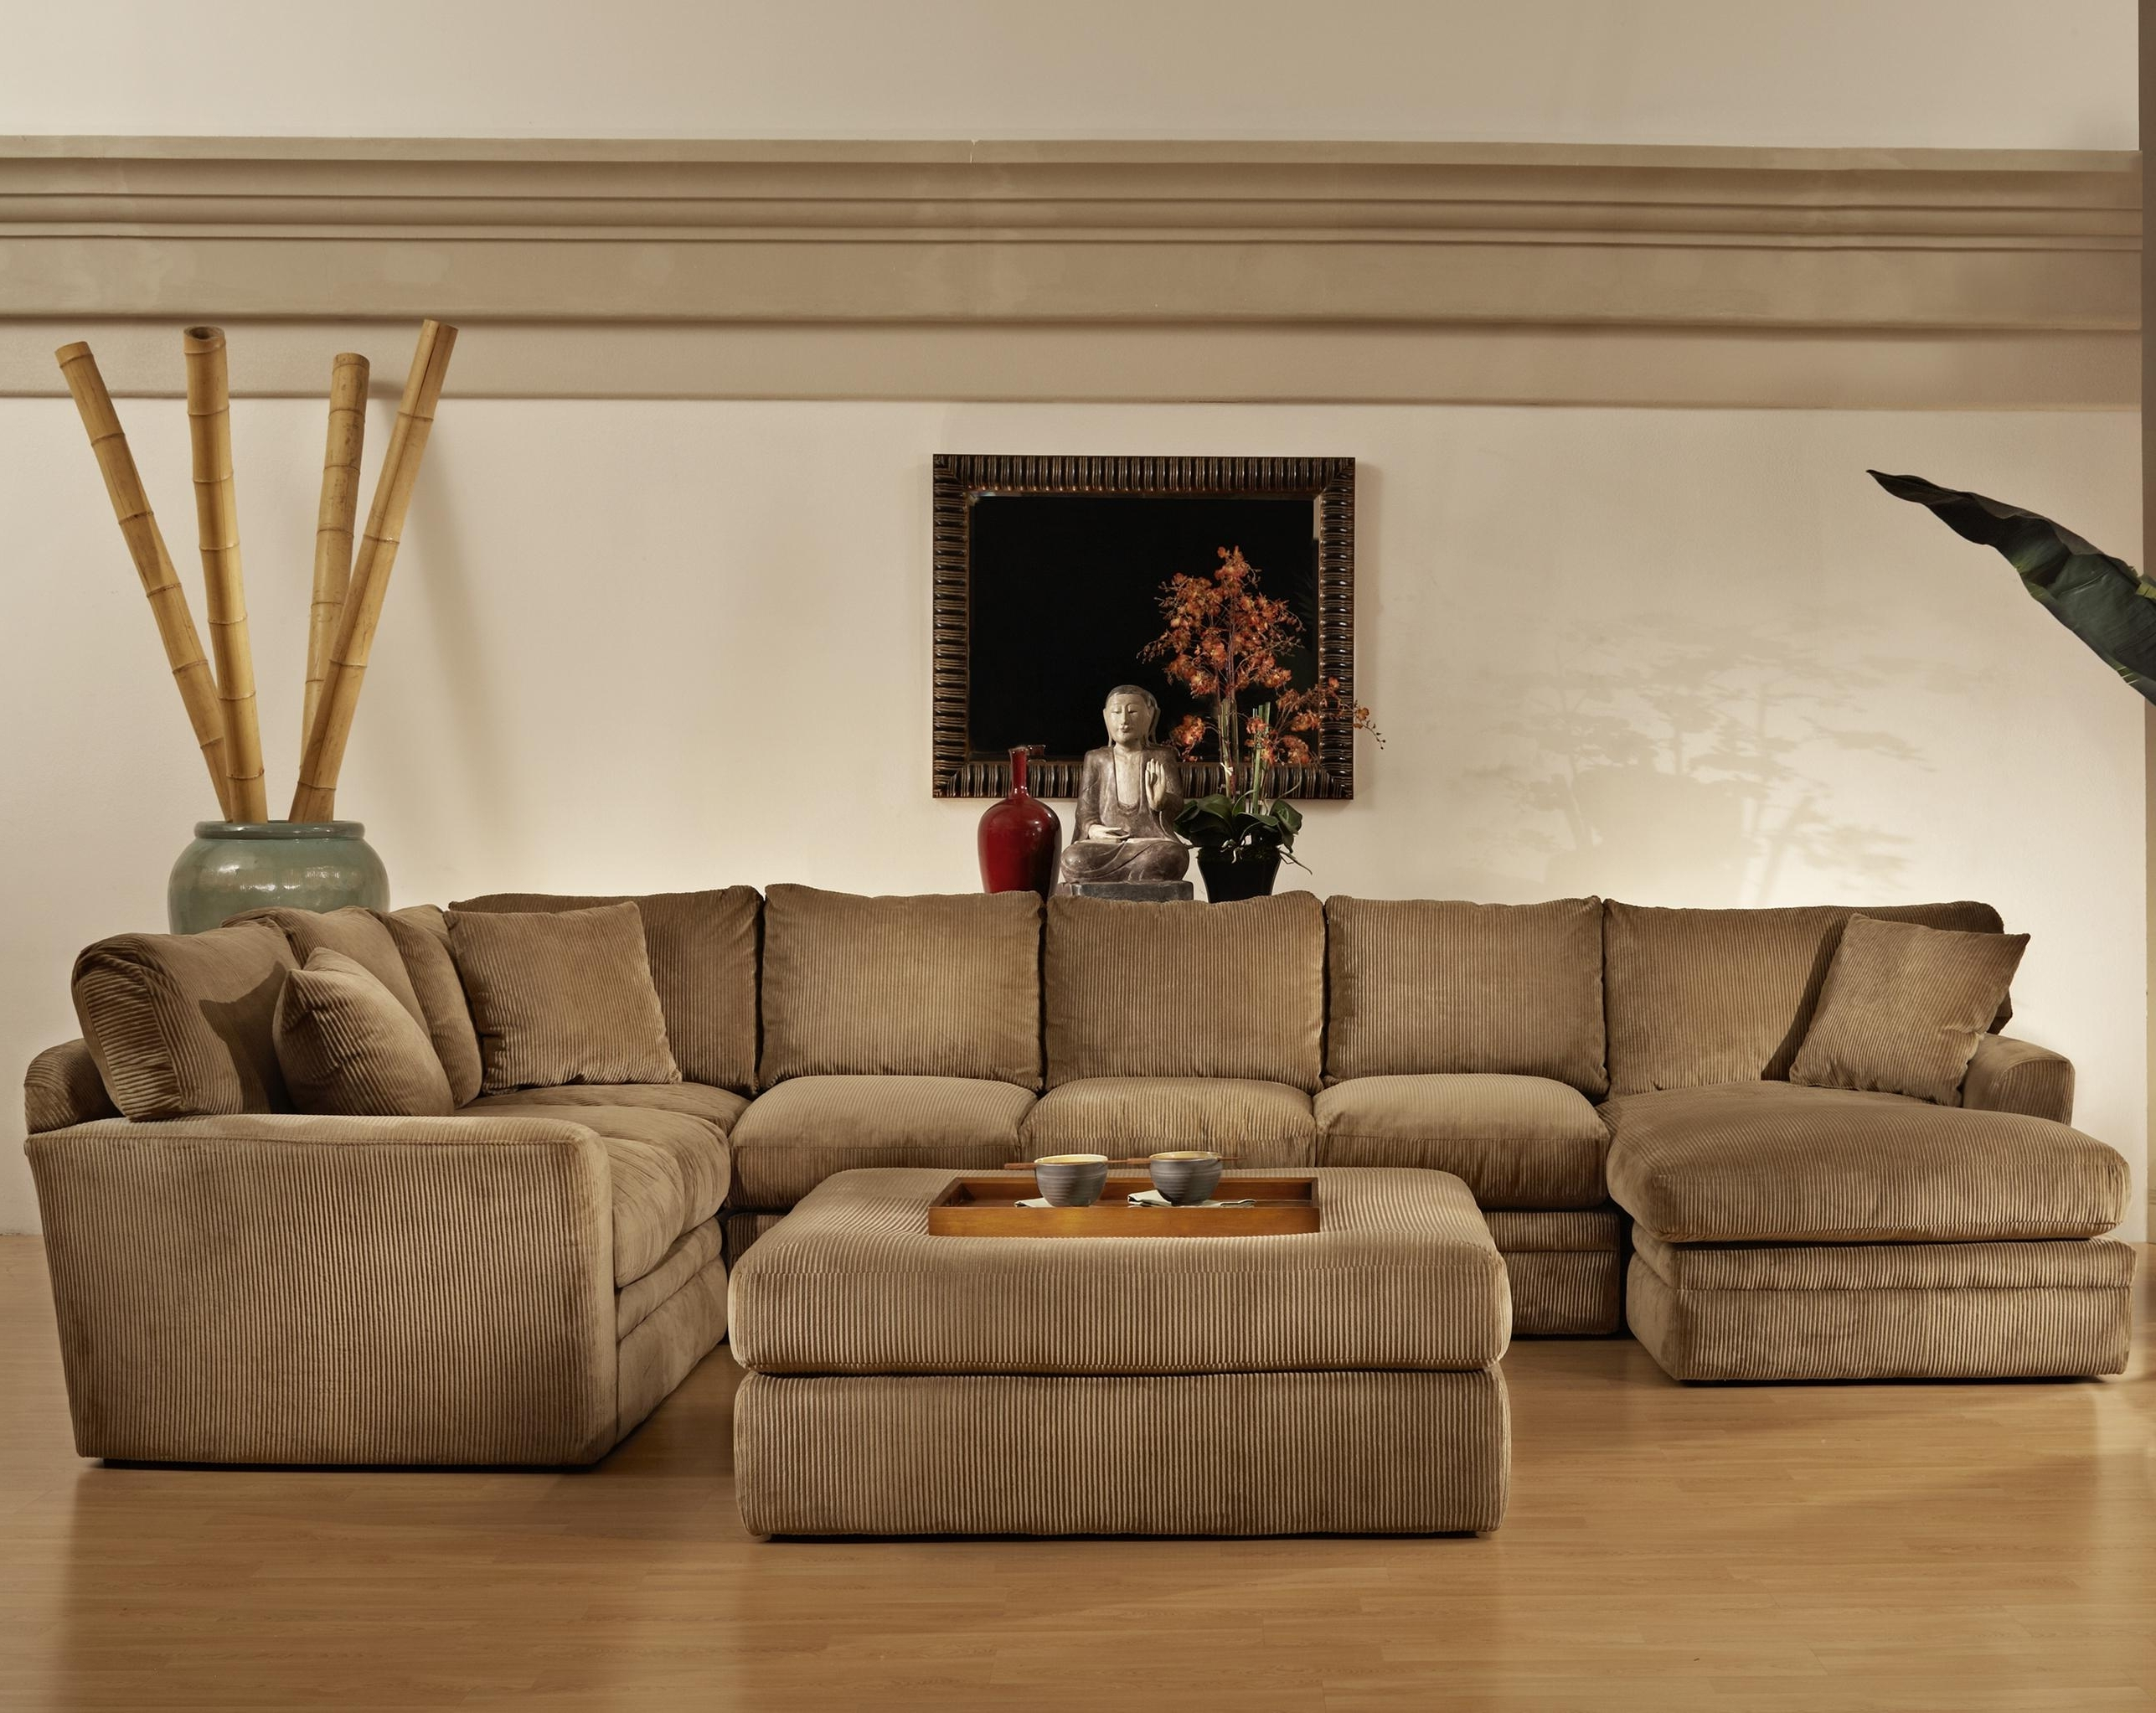 Preferred Cheap Sectionals With Ottoman For Living Room Design: Classy Sofa Sectionals For Home Interior (View 14 of 20)